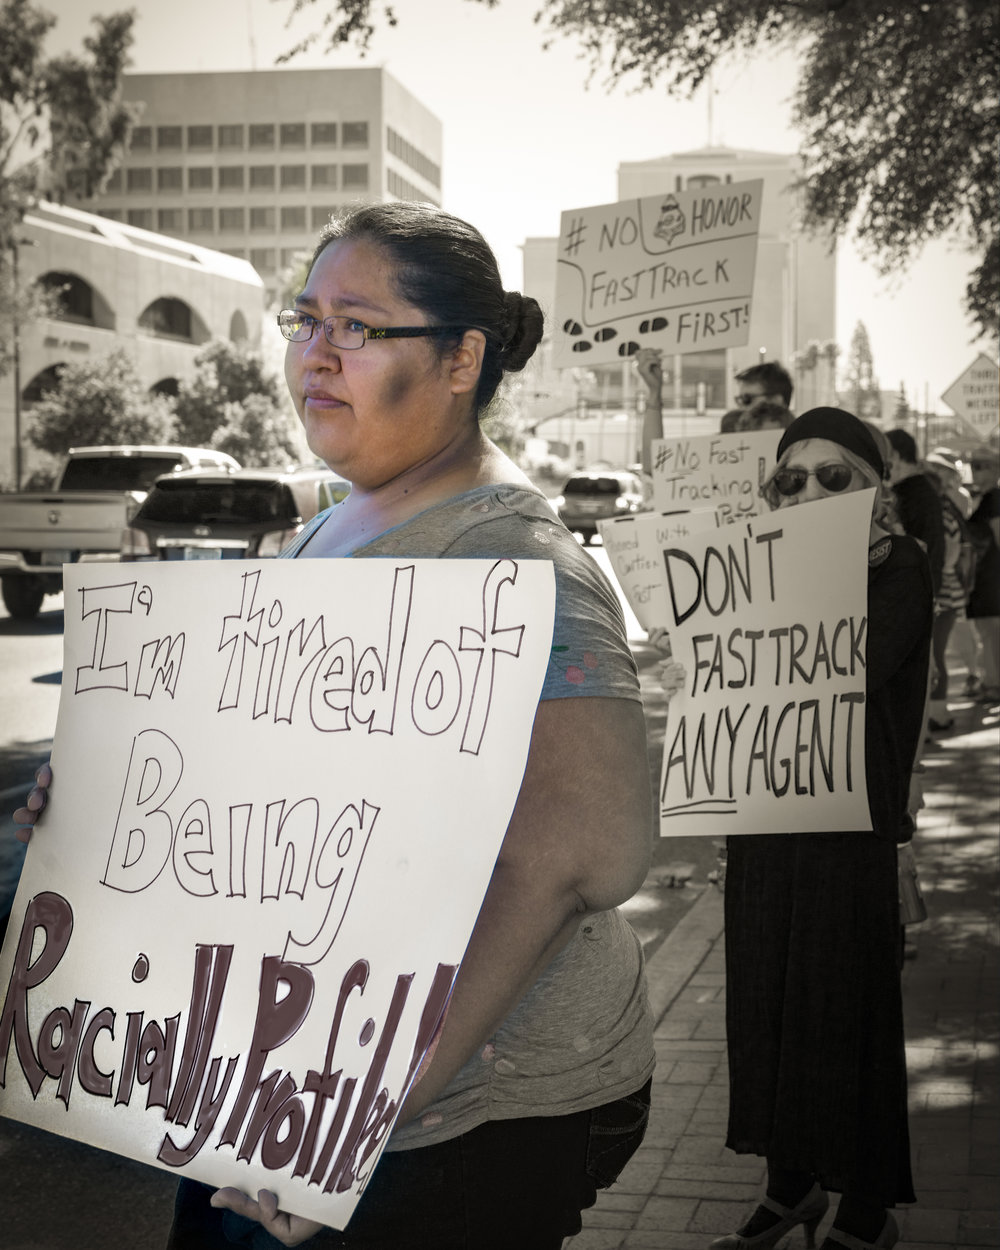 "May 23, 2017 Tucson, AZ: Gabriella Cazares-Kelly, a member of the Tohono O'odham Nation, is an educator and community organizer. She writes: ""In my community, Border Patrol agents have been known to question without cause, verbally harass, drive recklessly, damage property, intimidate and physically assault tribal members. Our community is already militarized.""  Title: Tired  Medium: Digital Print on Aluminum with frame  Size: 16 x 20  Year of creation: 2017  Price $350  For sales inquiries, please contact Etherton Gallery  www.ethertongallery.com"